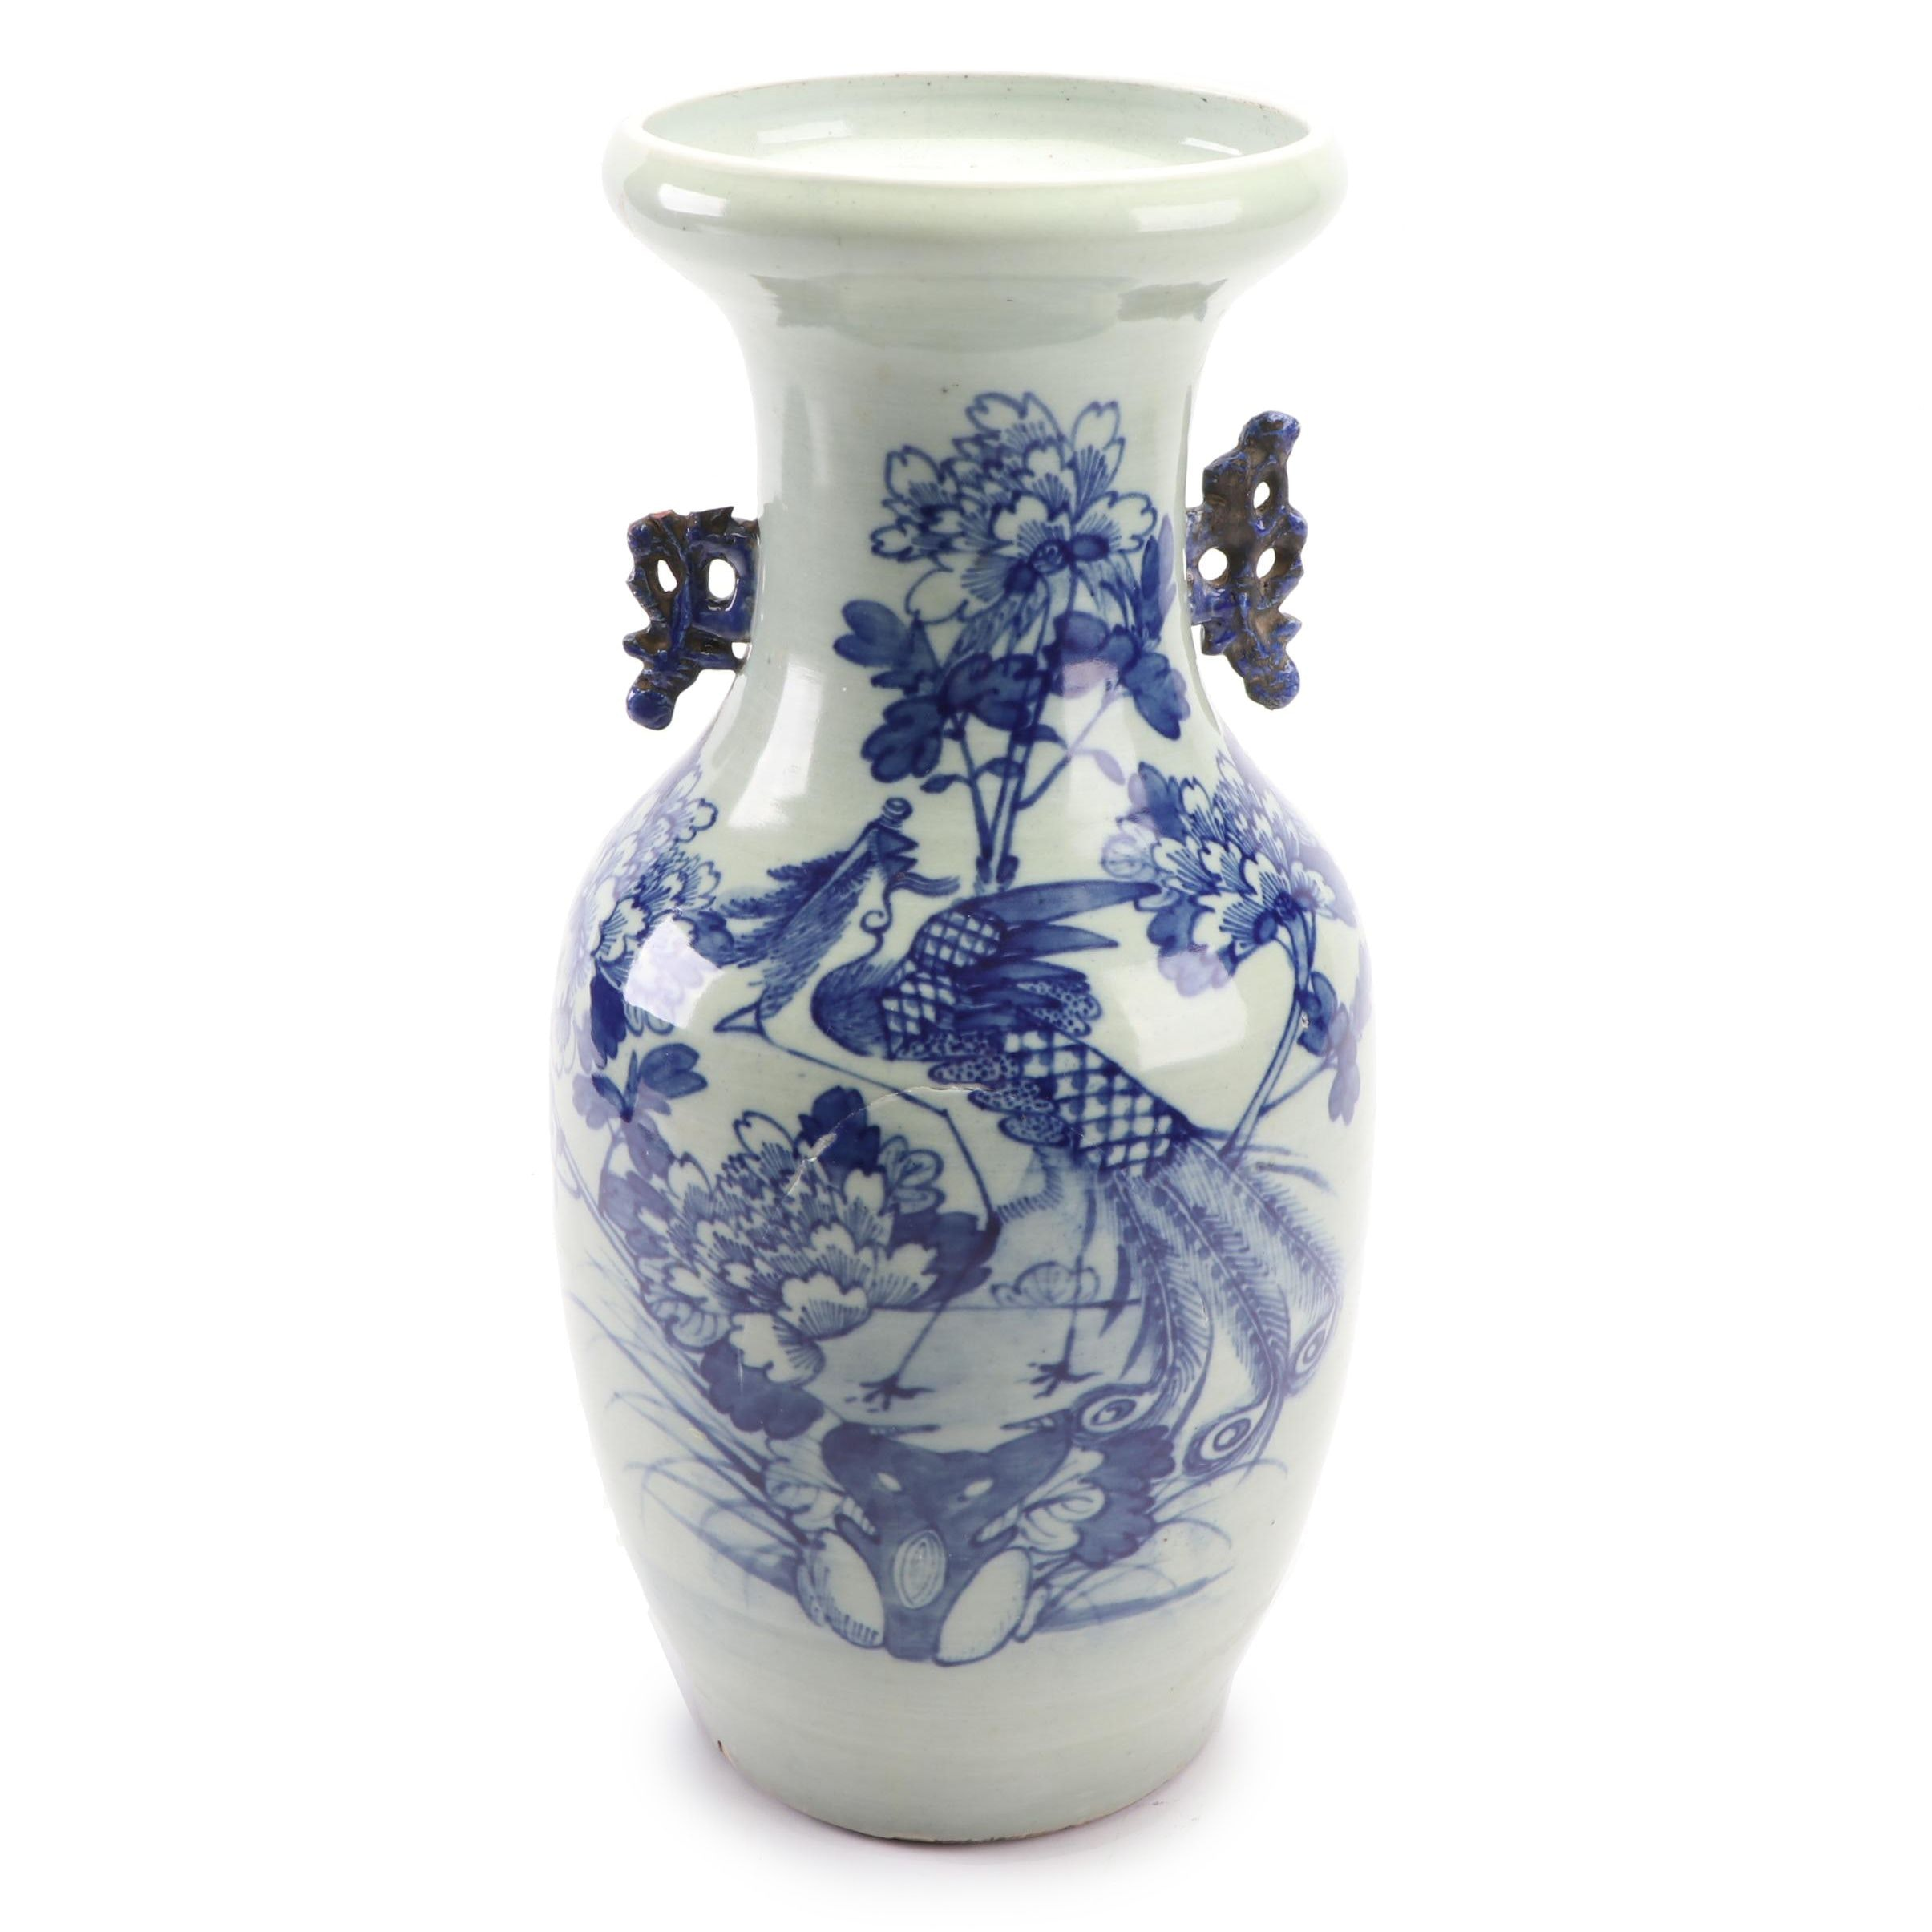 Chinese Blue and White Ceramic Vase, Late Qing Dynasty